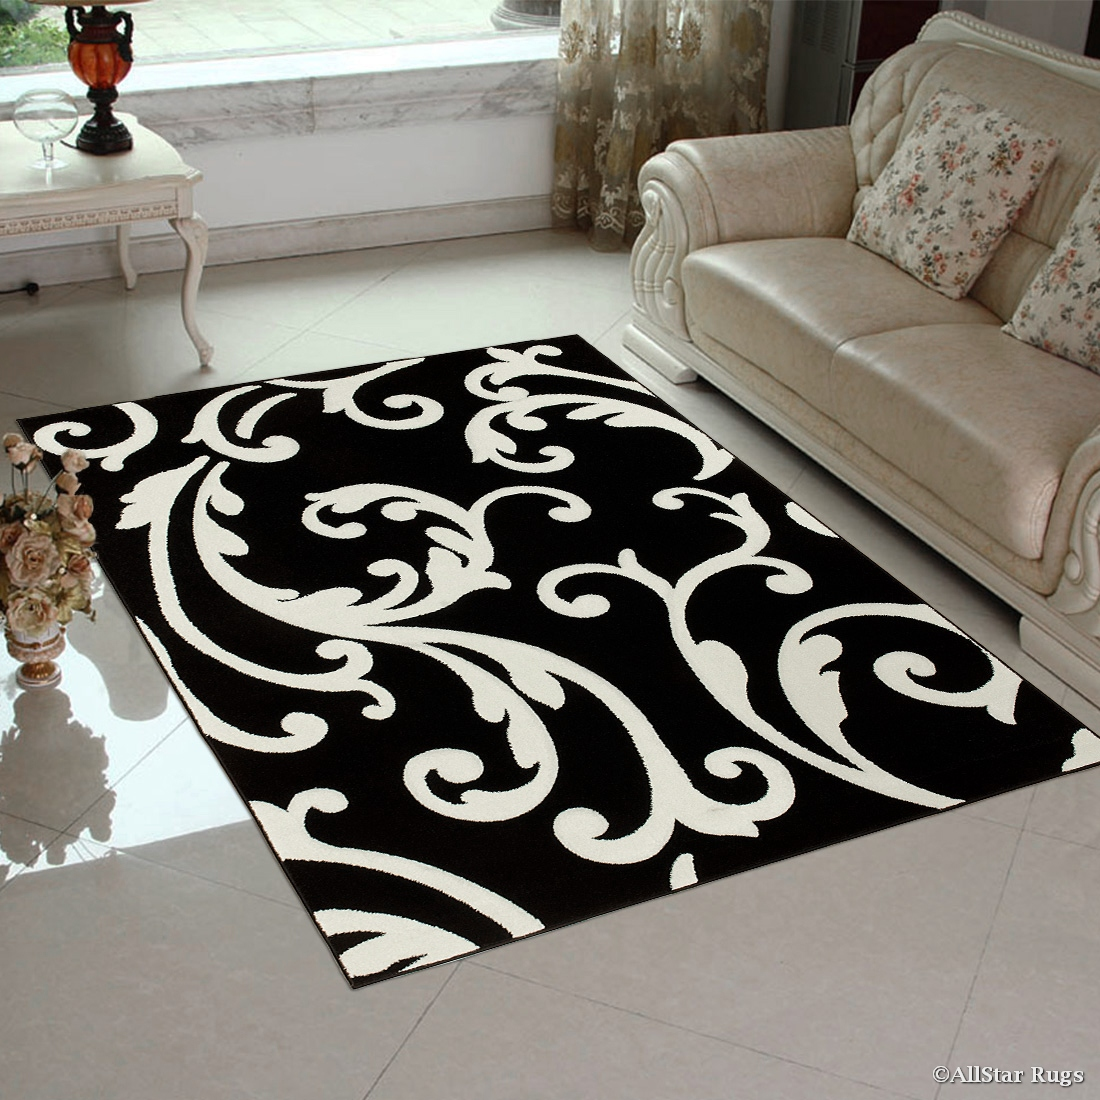 Click here to buy Black Allstar with White Floral Design Modern Geometric Area Rug (5